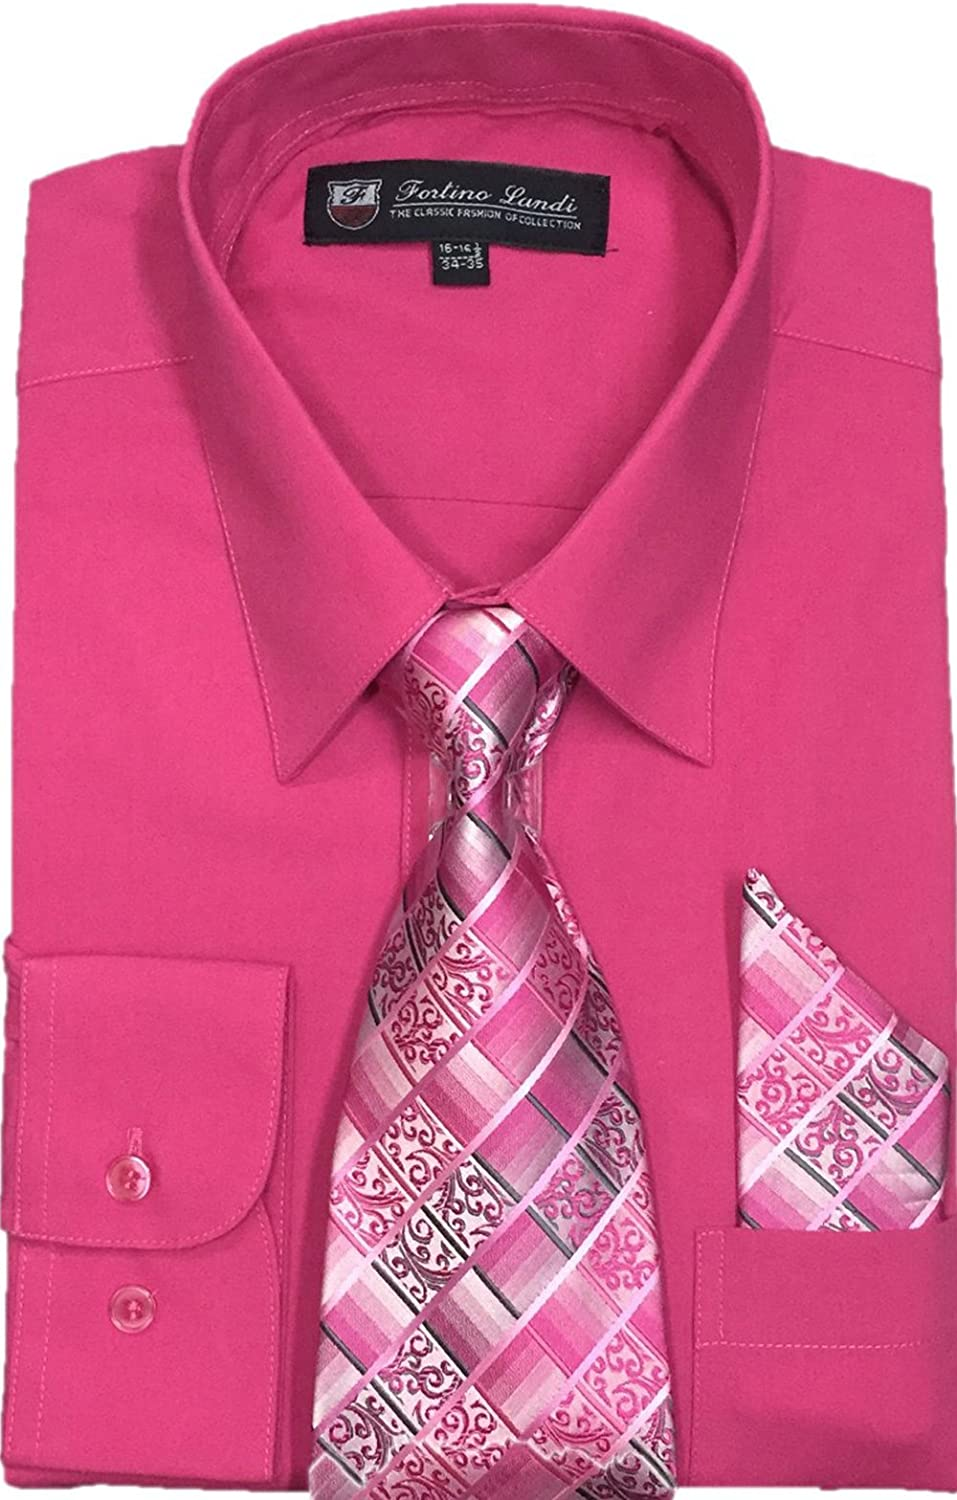 Fortino Landi Men's Long Sleeve Dress Shirt, with Tie and Hanky - Many Colors